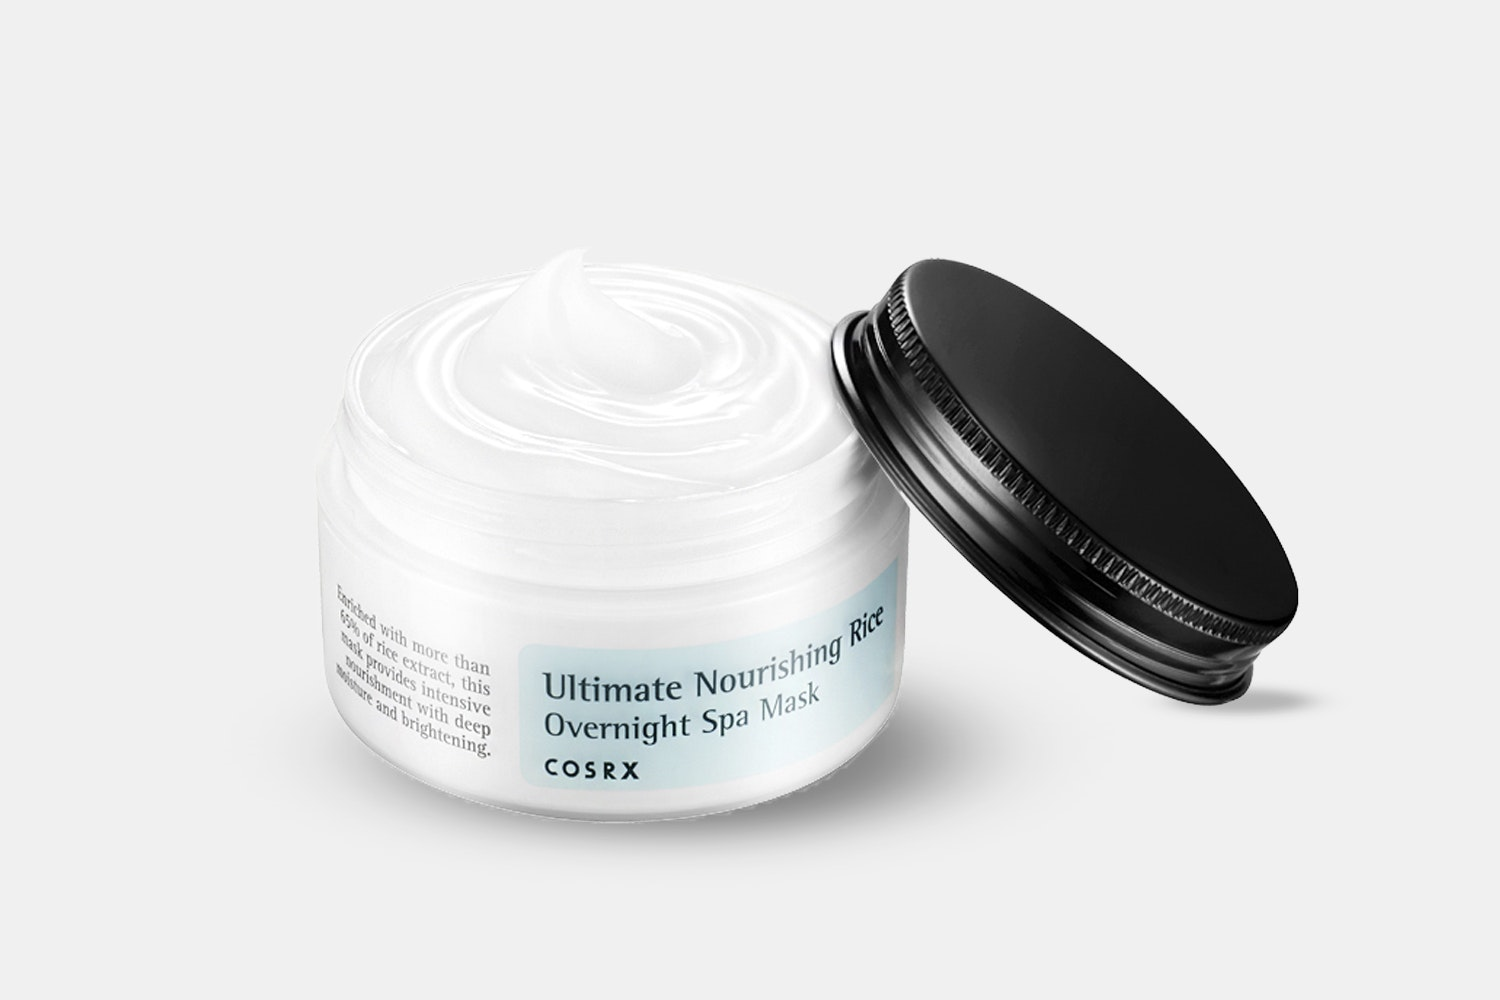 COSRX Ultimate Overnight Masks (2-Pack)